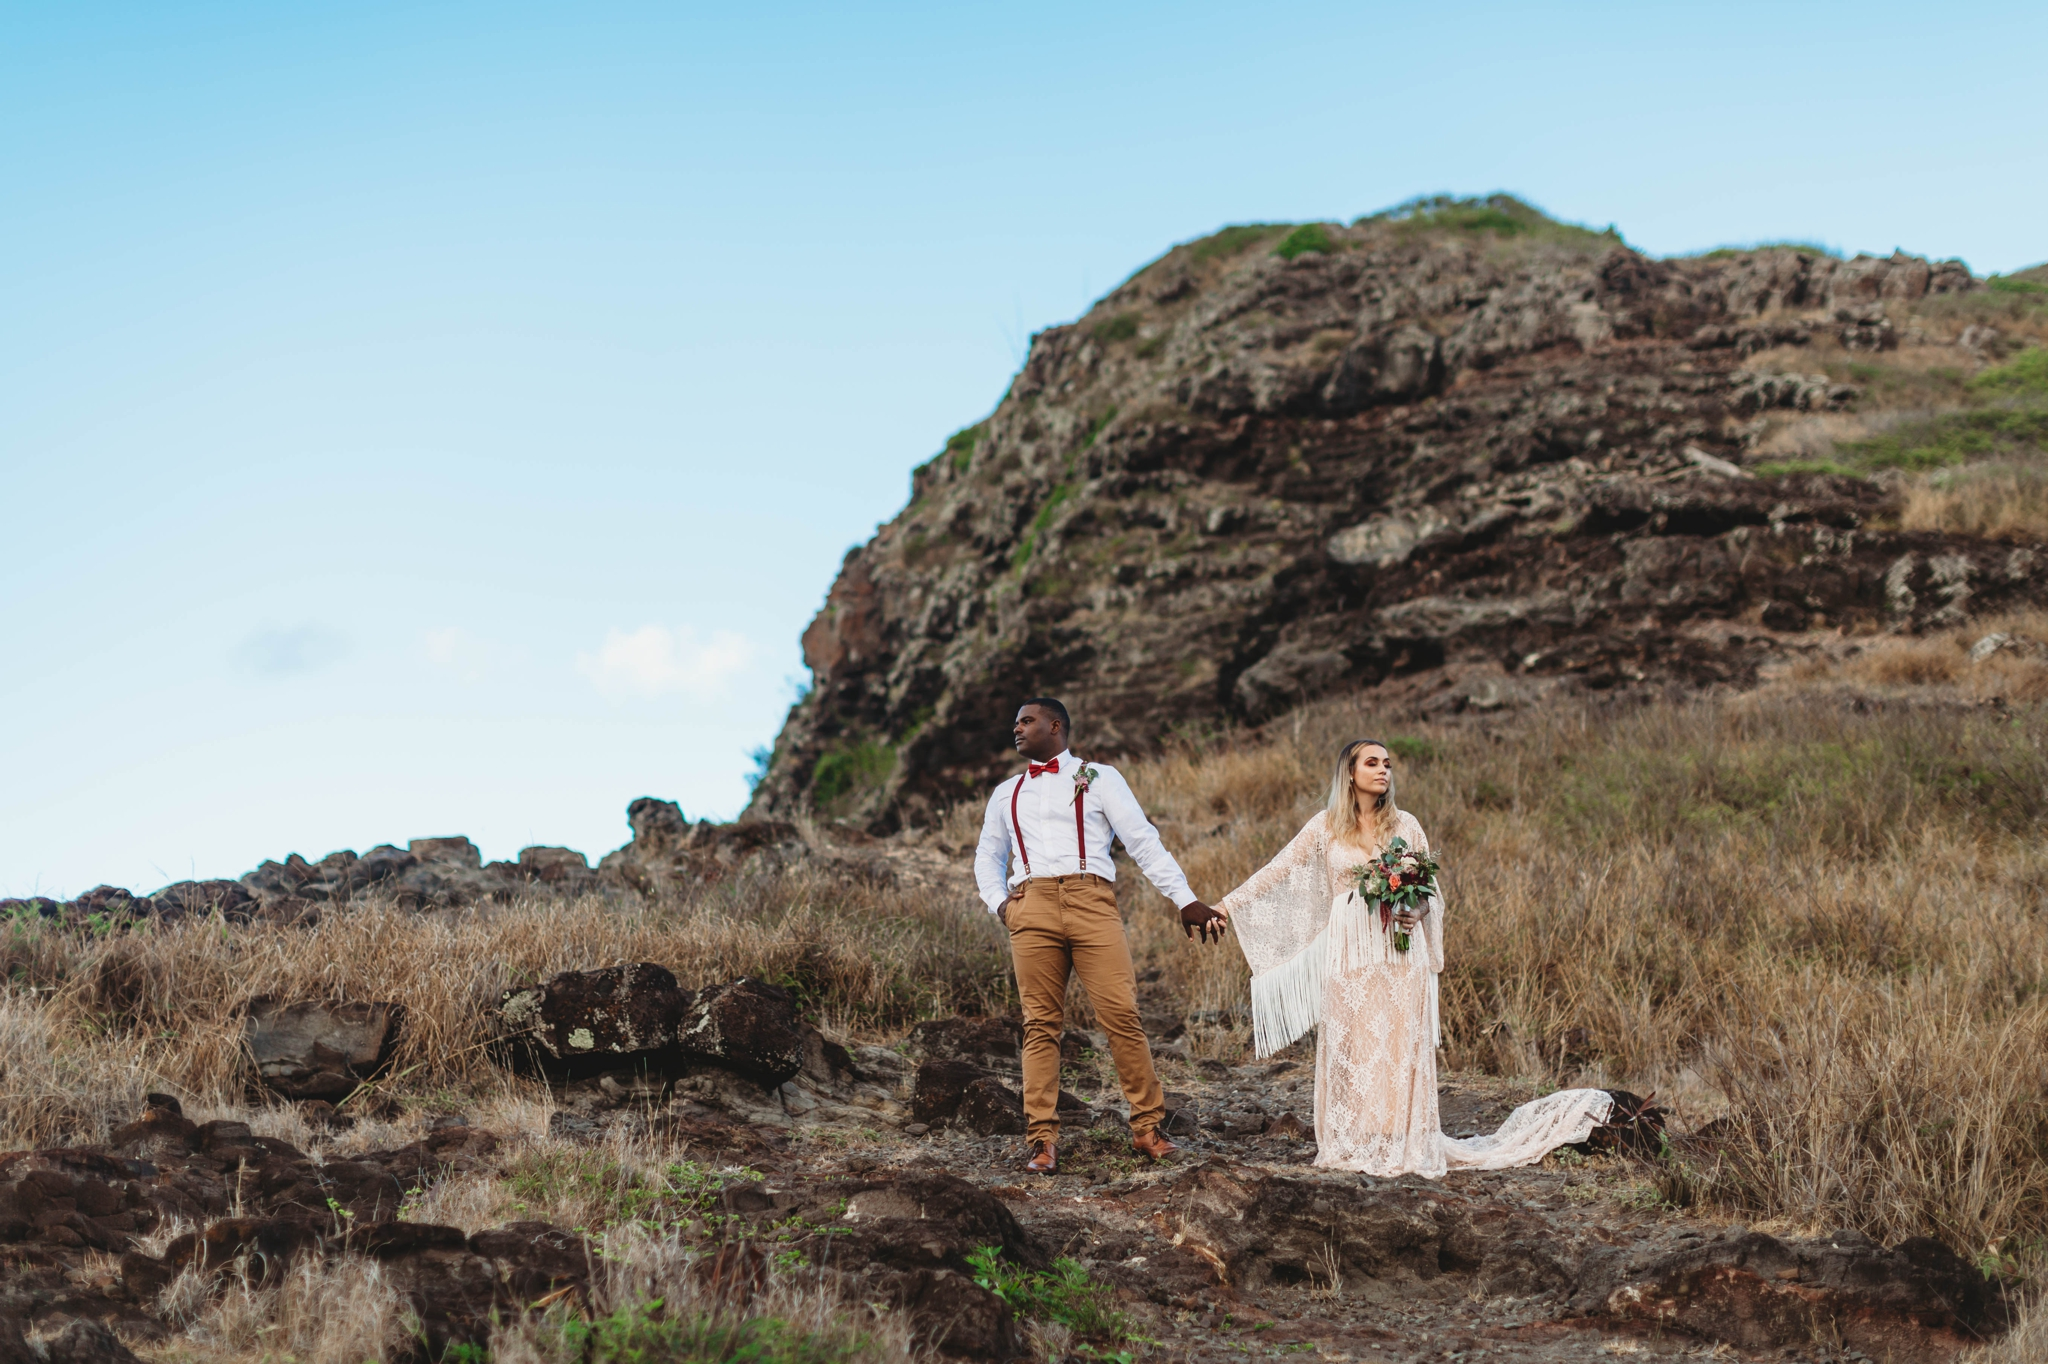 couple standing besides the cliffs - Elopement at Makapuu Lookout, Waimanalo, HI - Oahu Hawaii Engagement Photographer - Bride in a flowy fringe boho wedding dress - in grassy mountains with the ocean in the back - lanikai lookout - deutsche hochzeits fotografin in hawaii - smal1 - dark and moody - true to live